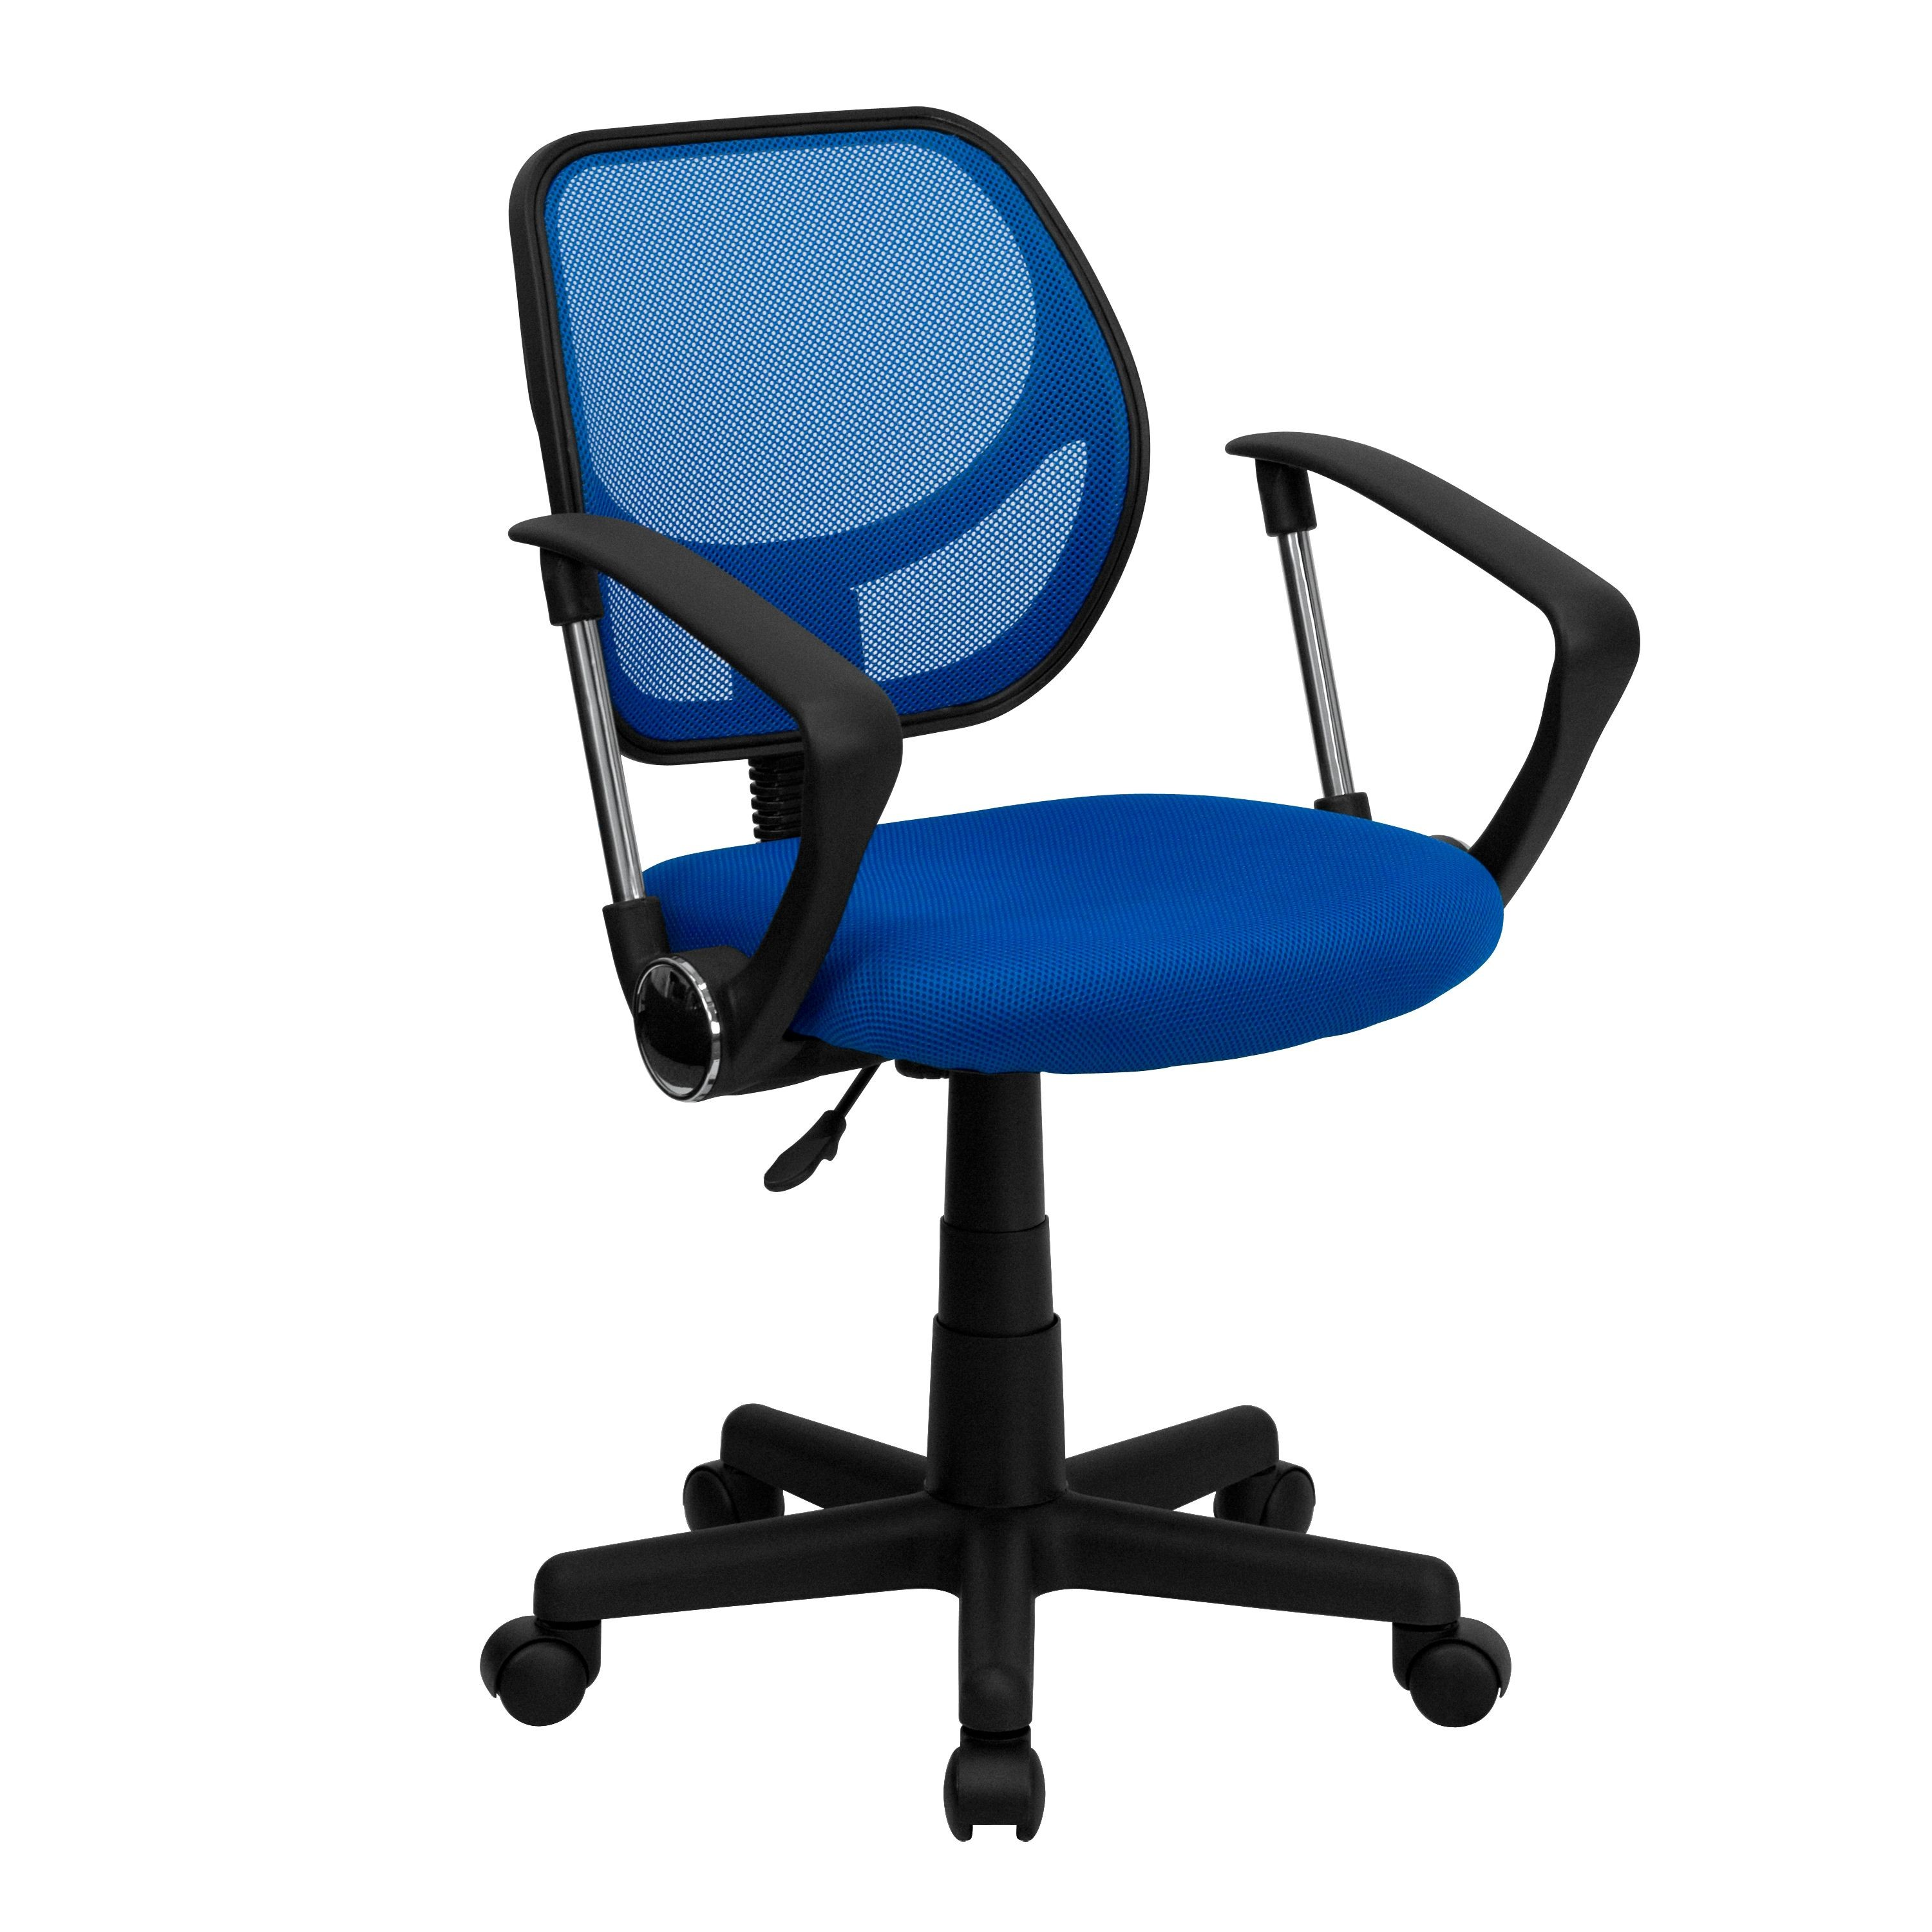 Flash Furniture WA-3074-BL-A-GG Blue Mesh Computer Chair with Arms